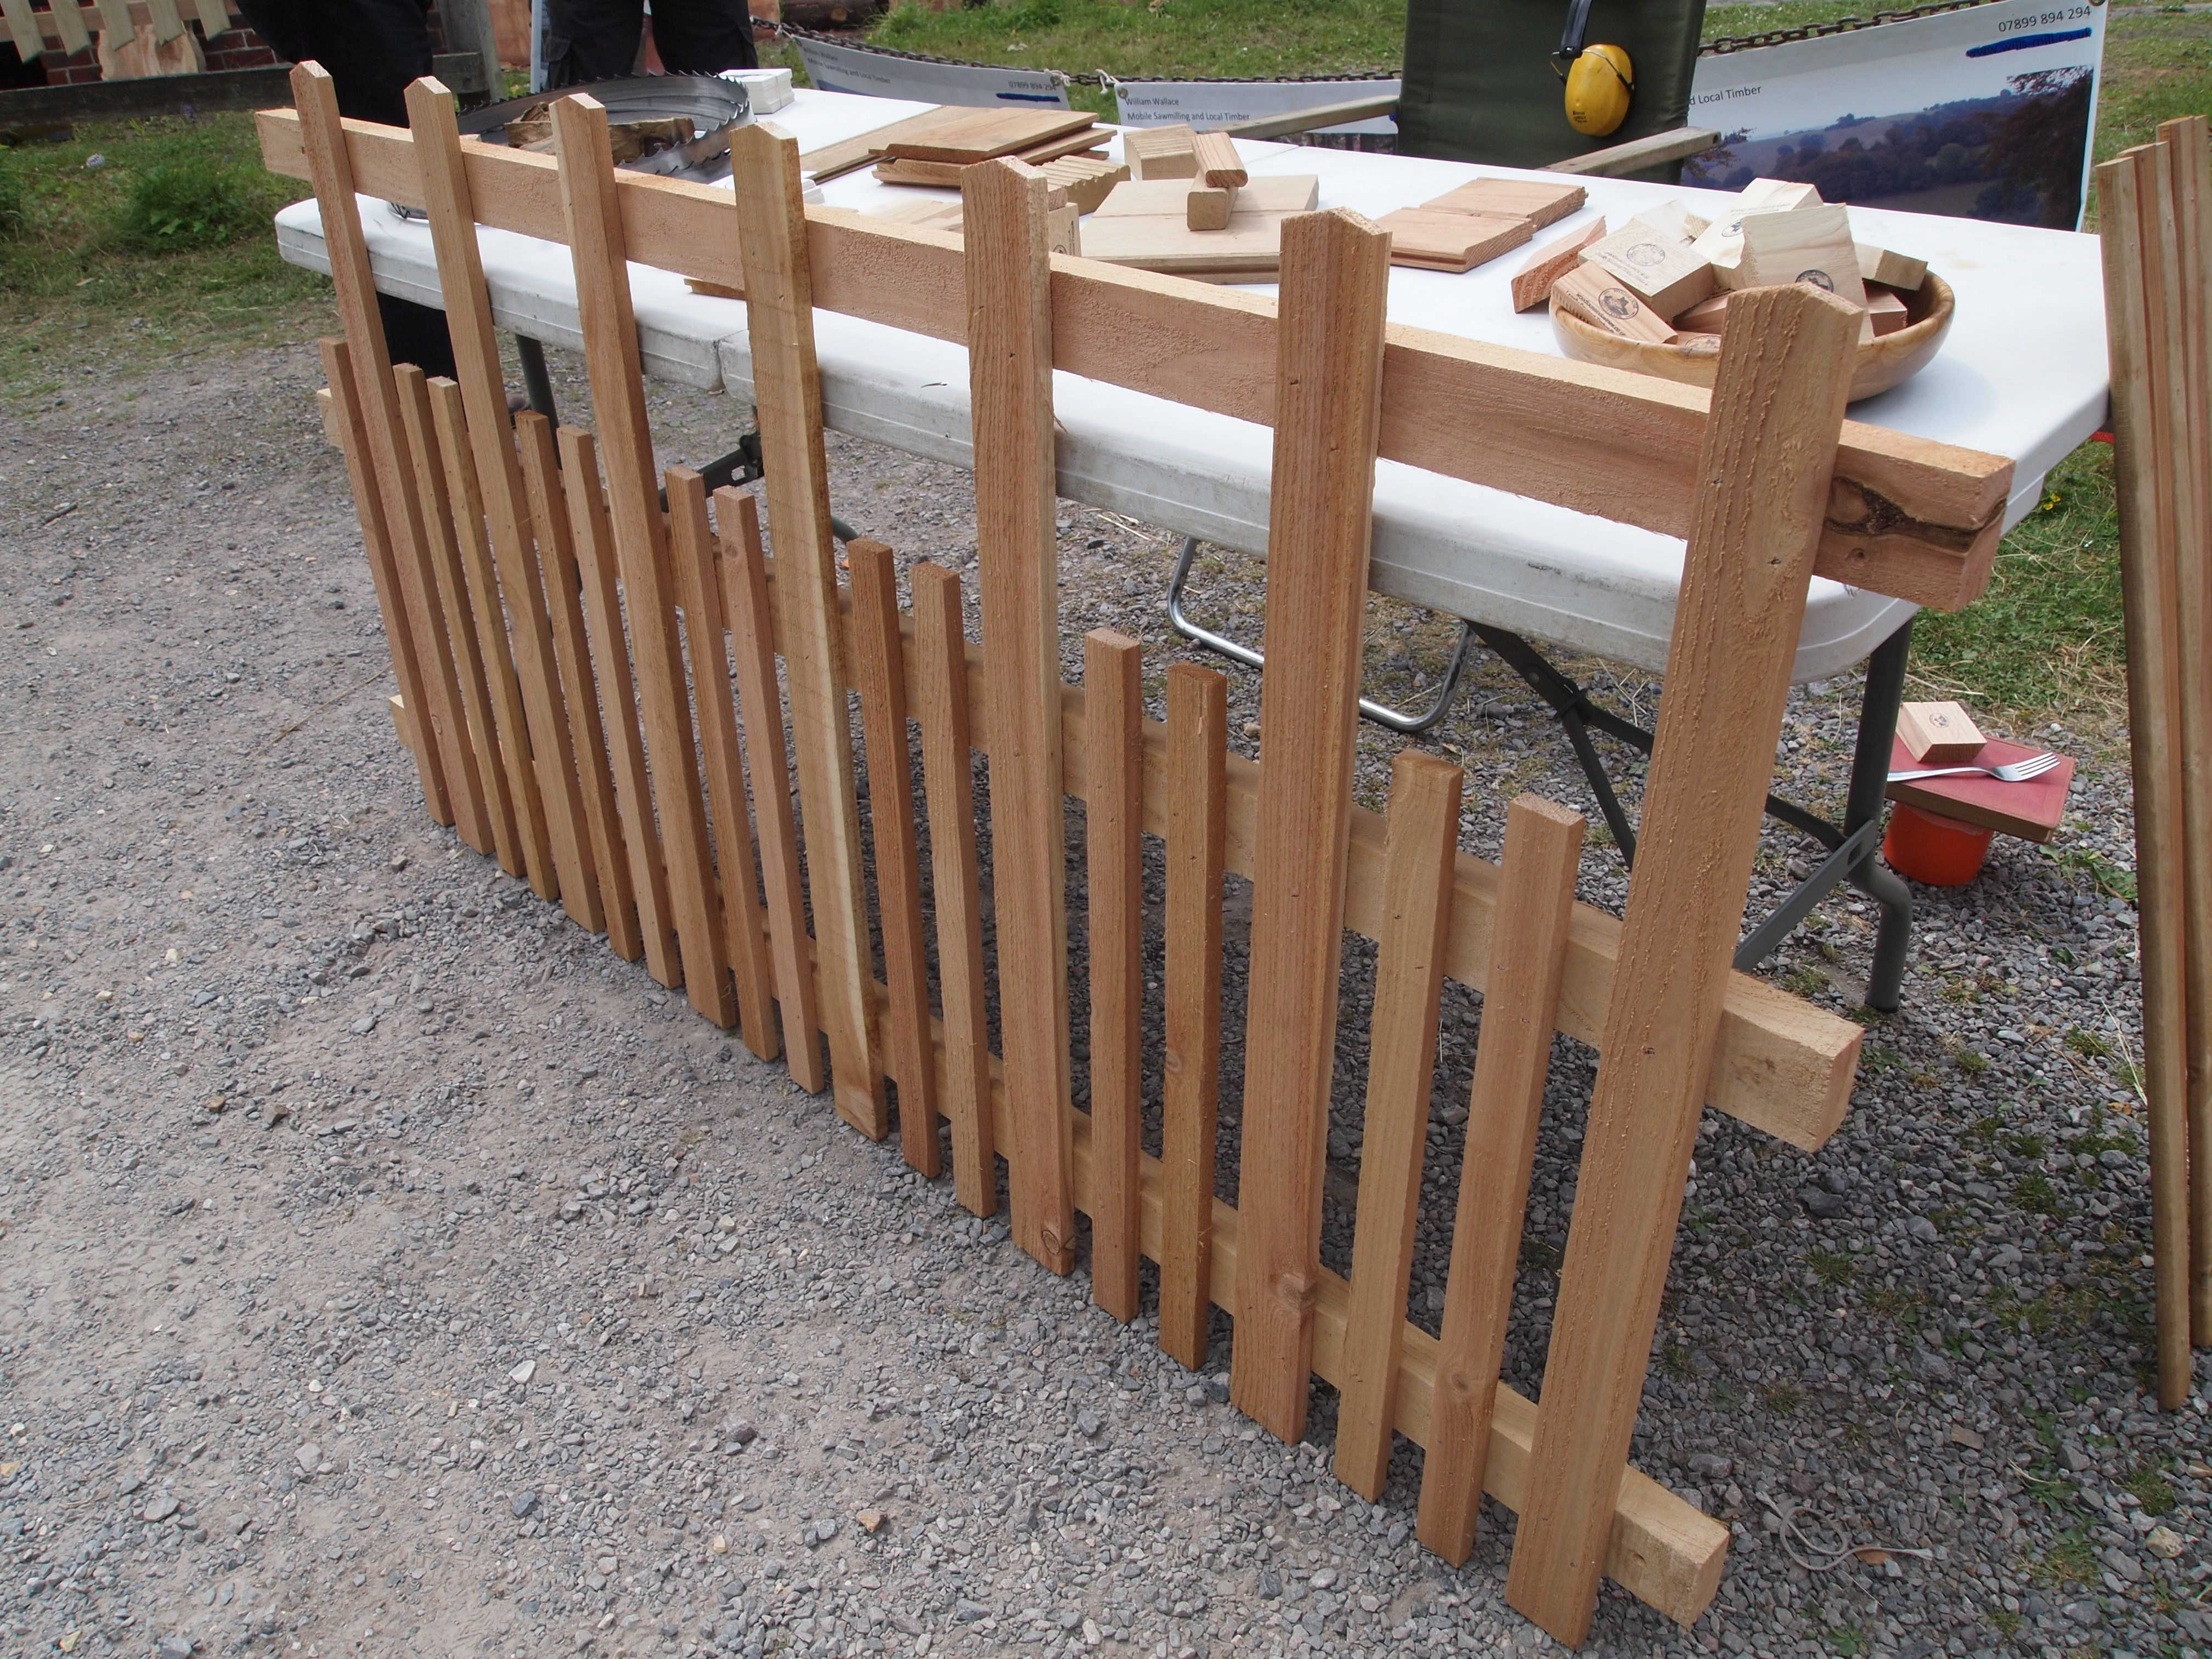 Western Red Cedar Picket Fencing, Grown And Made In West